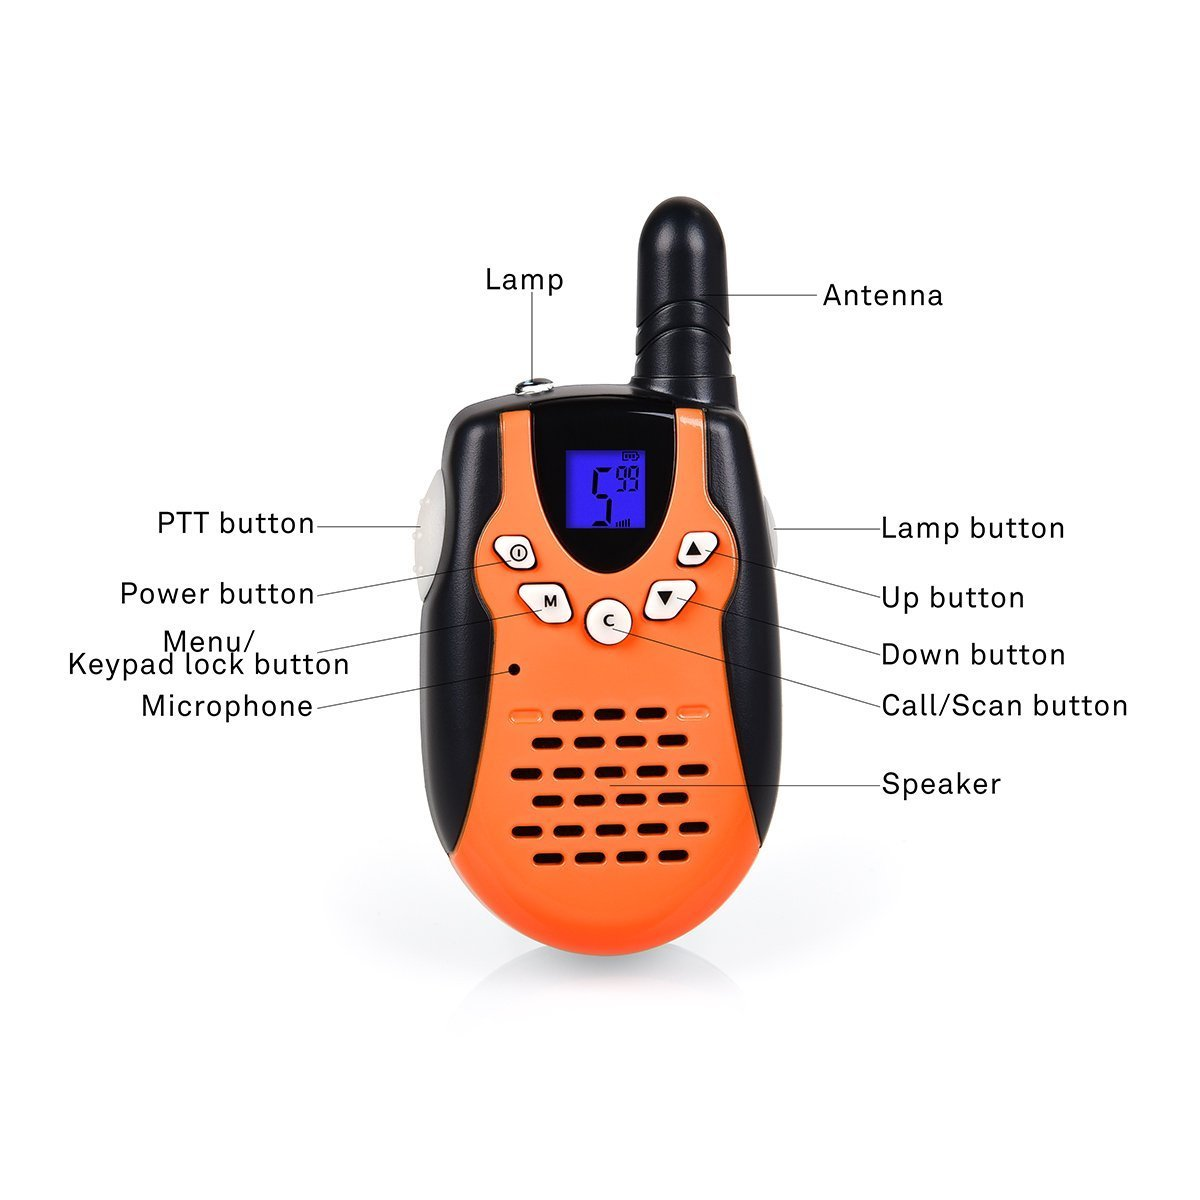 Swiftion Walkie Talkies for Kids Walkie Talkies for Child with Charger Batteries 22 Channel Walky Talky 0.5W FRS/GMRS Long Range 2 Way Radios (Orange, Pack of 2) by Swiftion (Image #2)